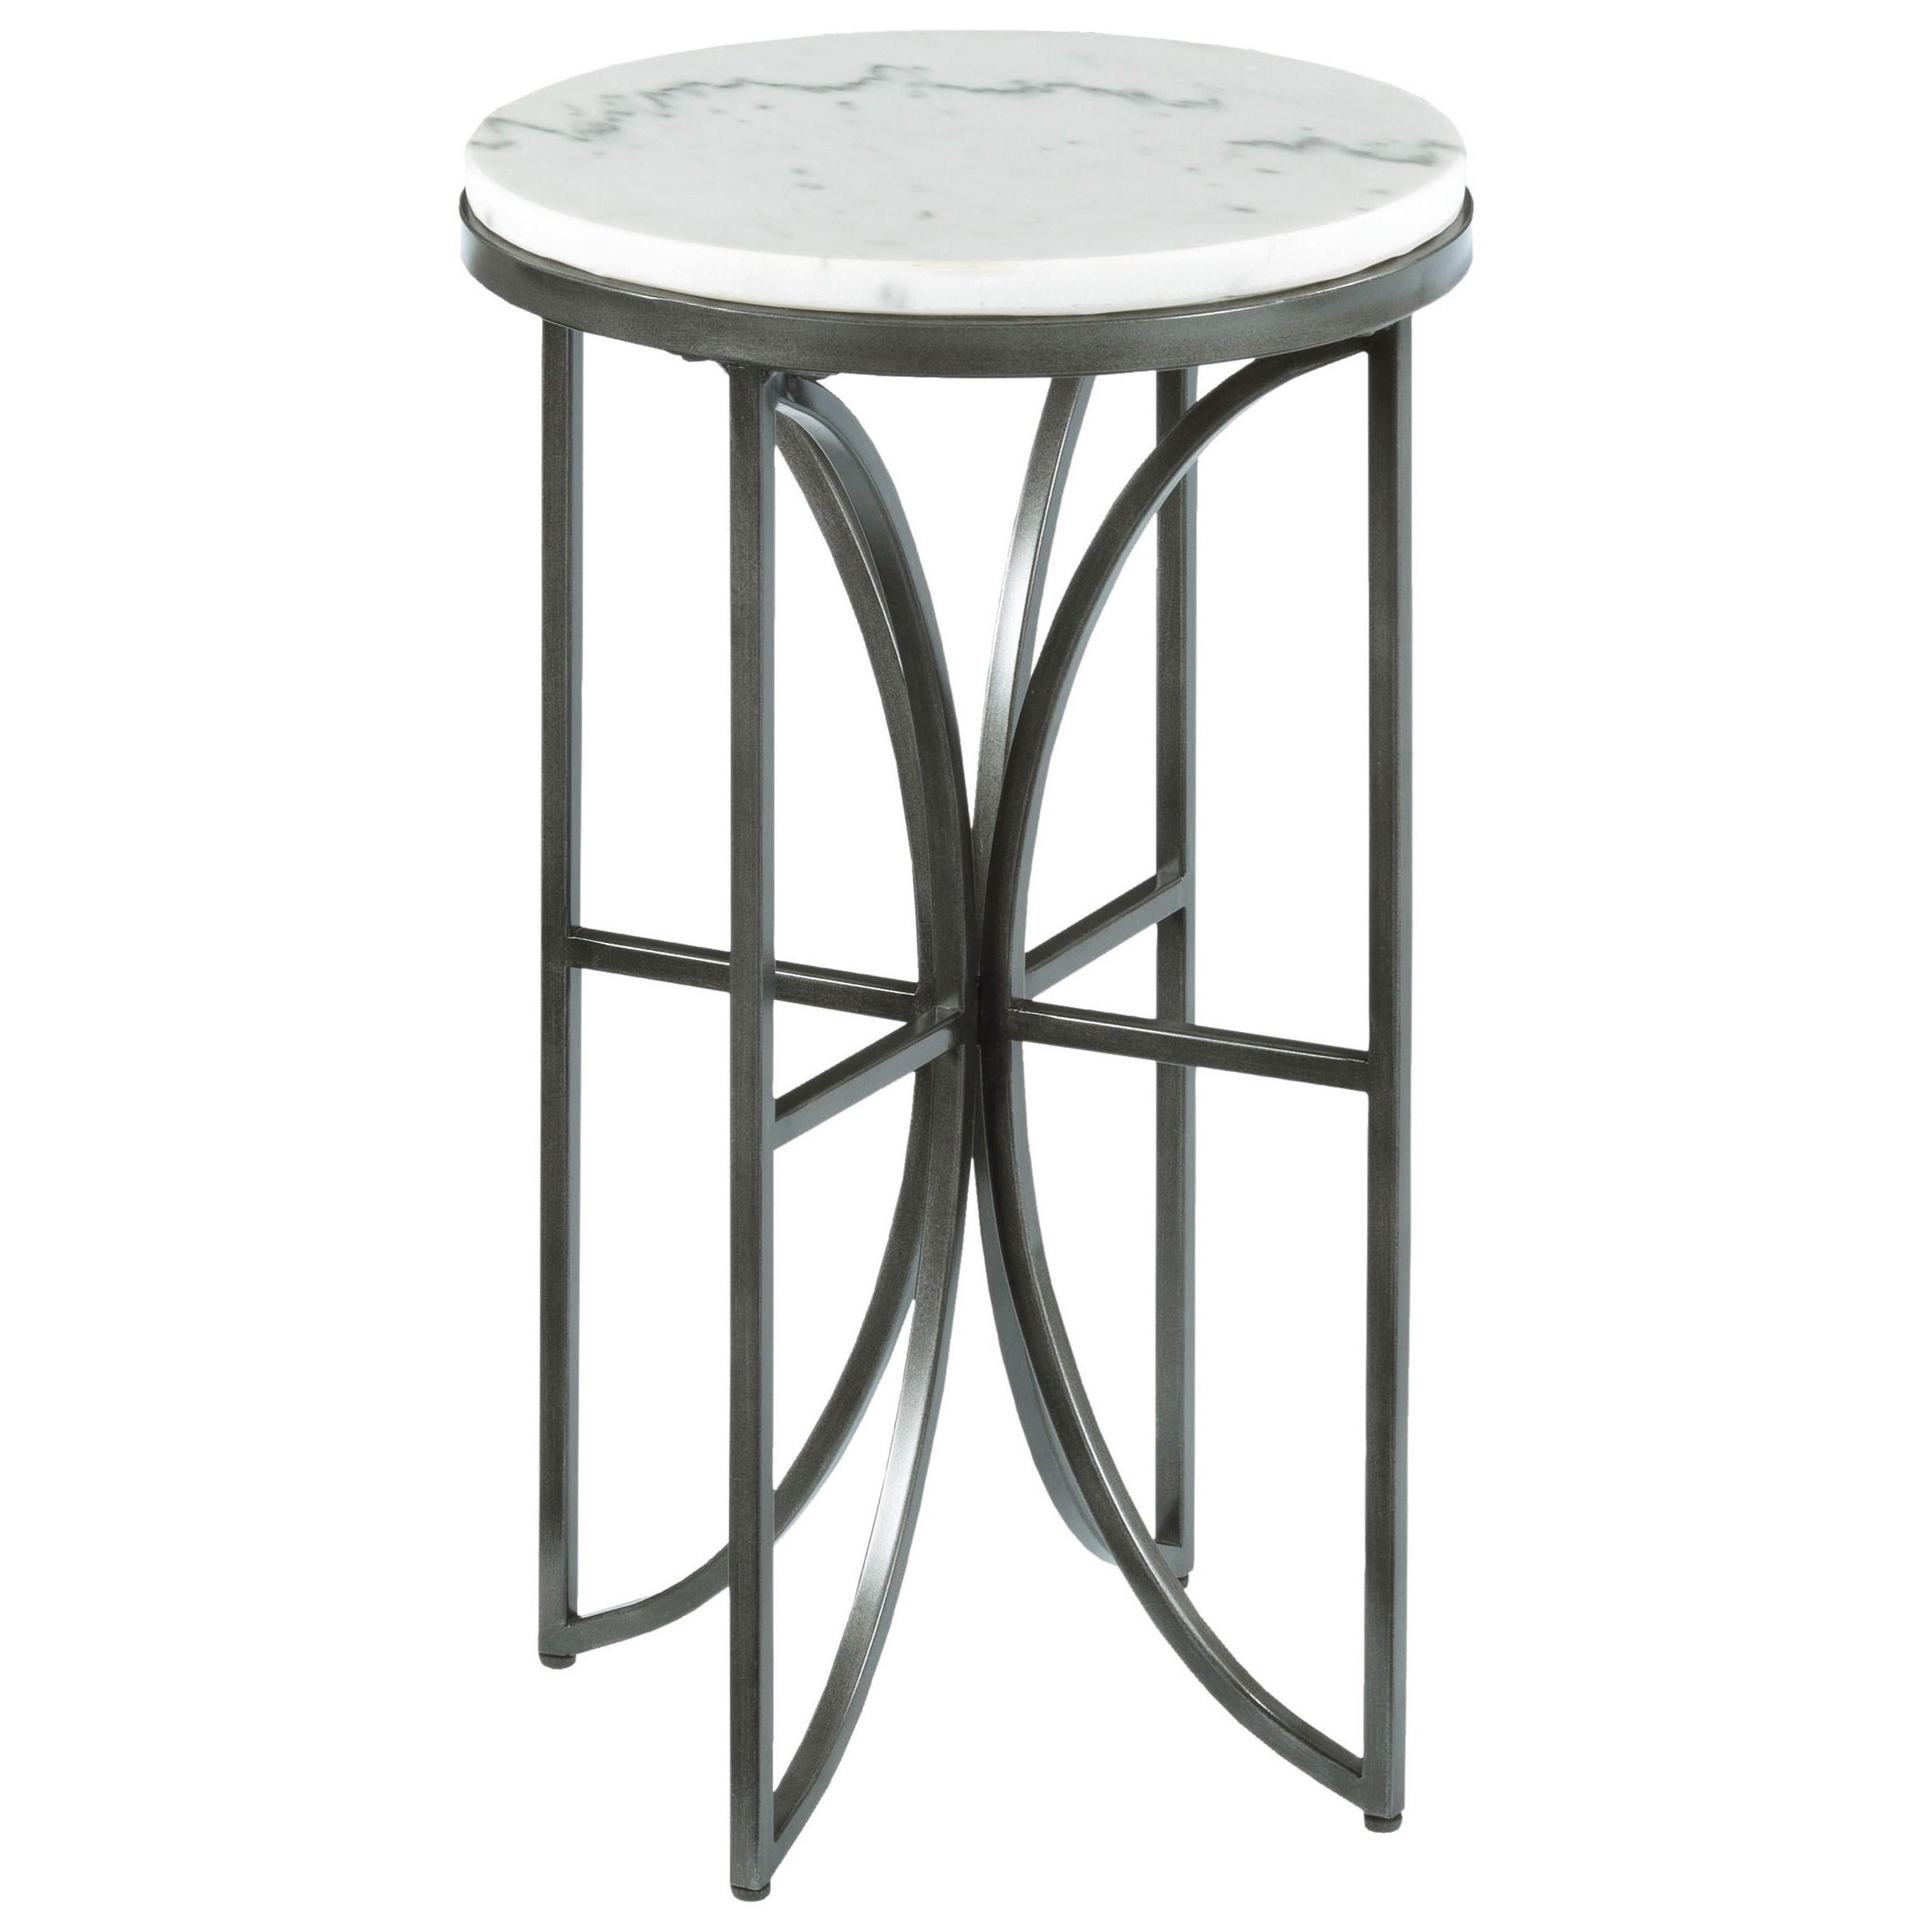 small round accent table with marble top hammary wolf and products color impact end glass replacement gaming high dining set center coffee leons sofa beds wood iron side rustic